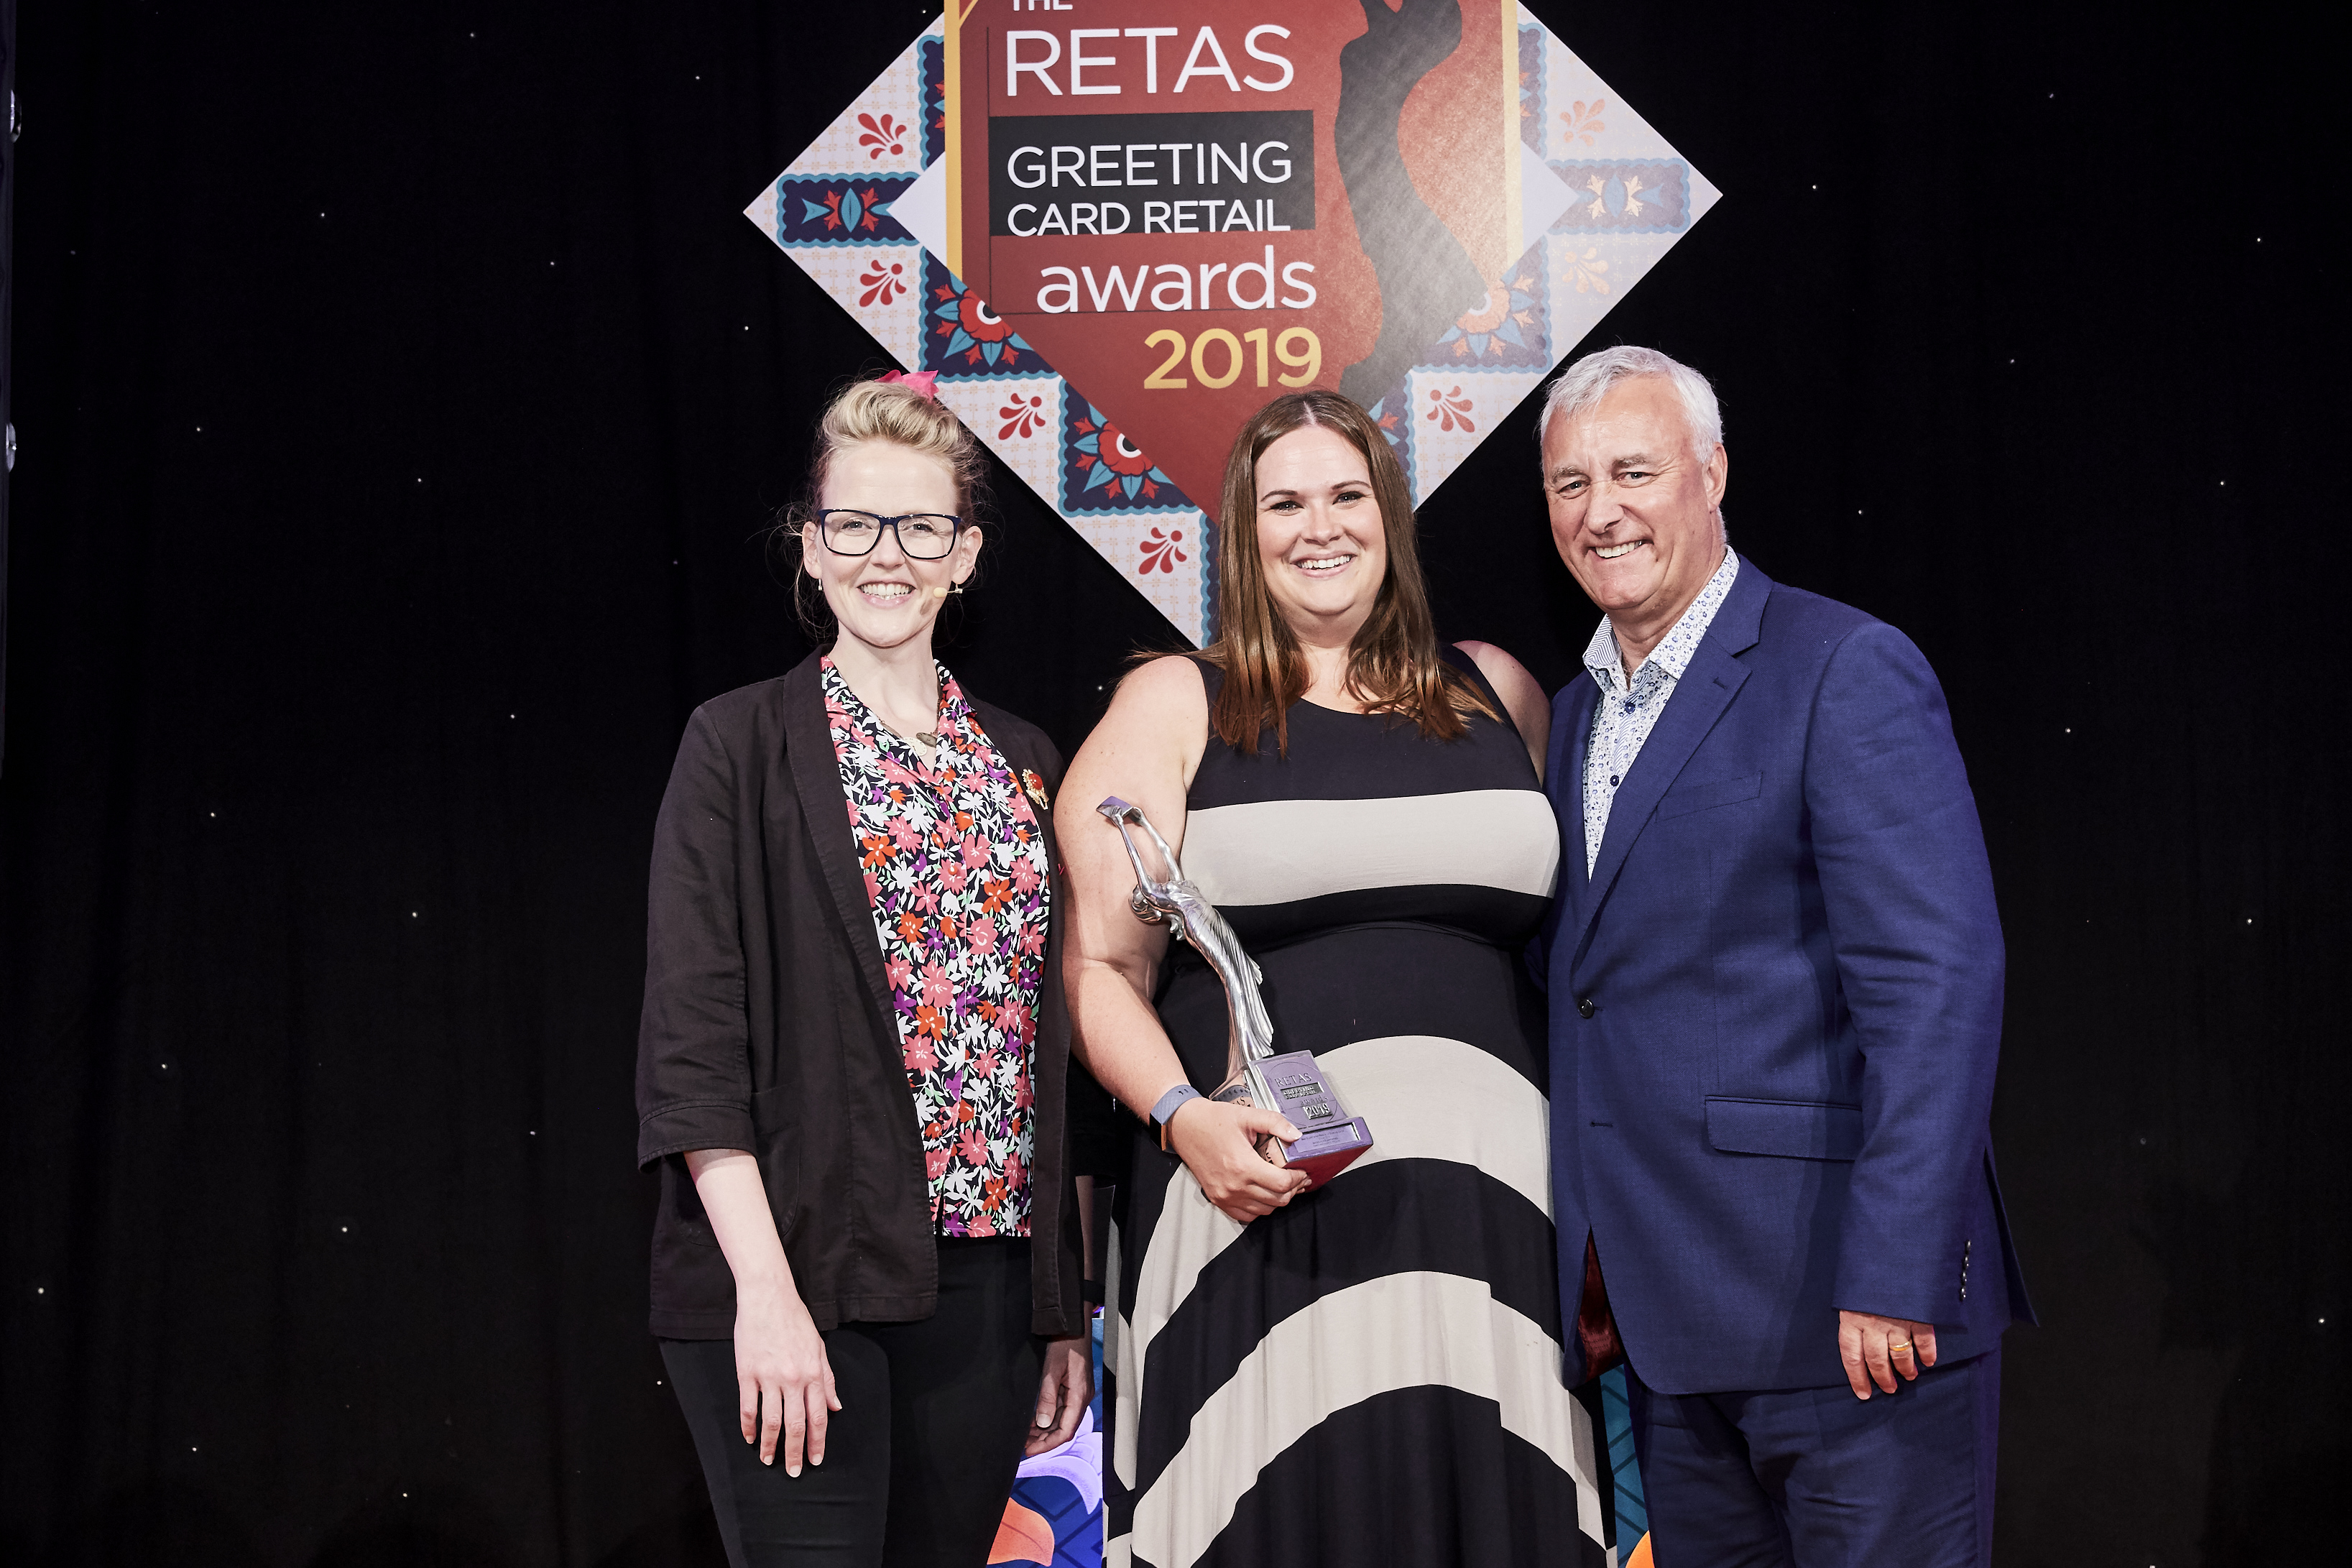 Above: Carly Pearson, senior buyer for Sainsbury's, was over the moon to accept her Retas award from Simon Boyd, operations director and co-owner of category sponsor, Progressive Greetings Live.